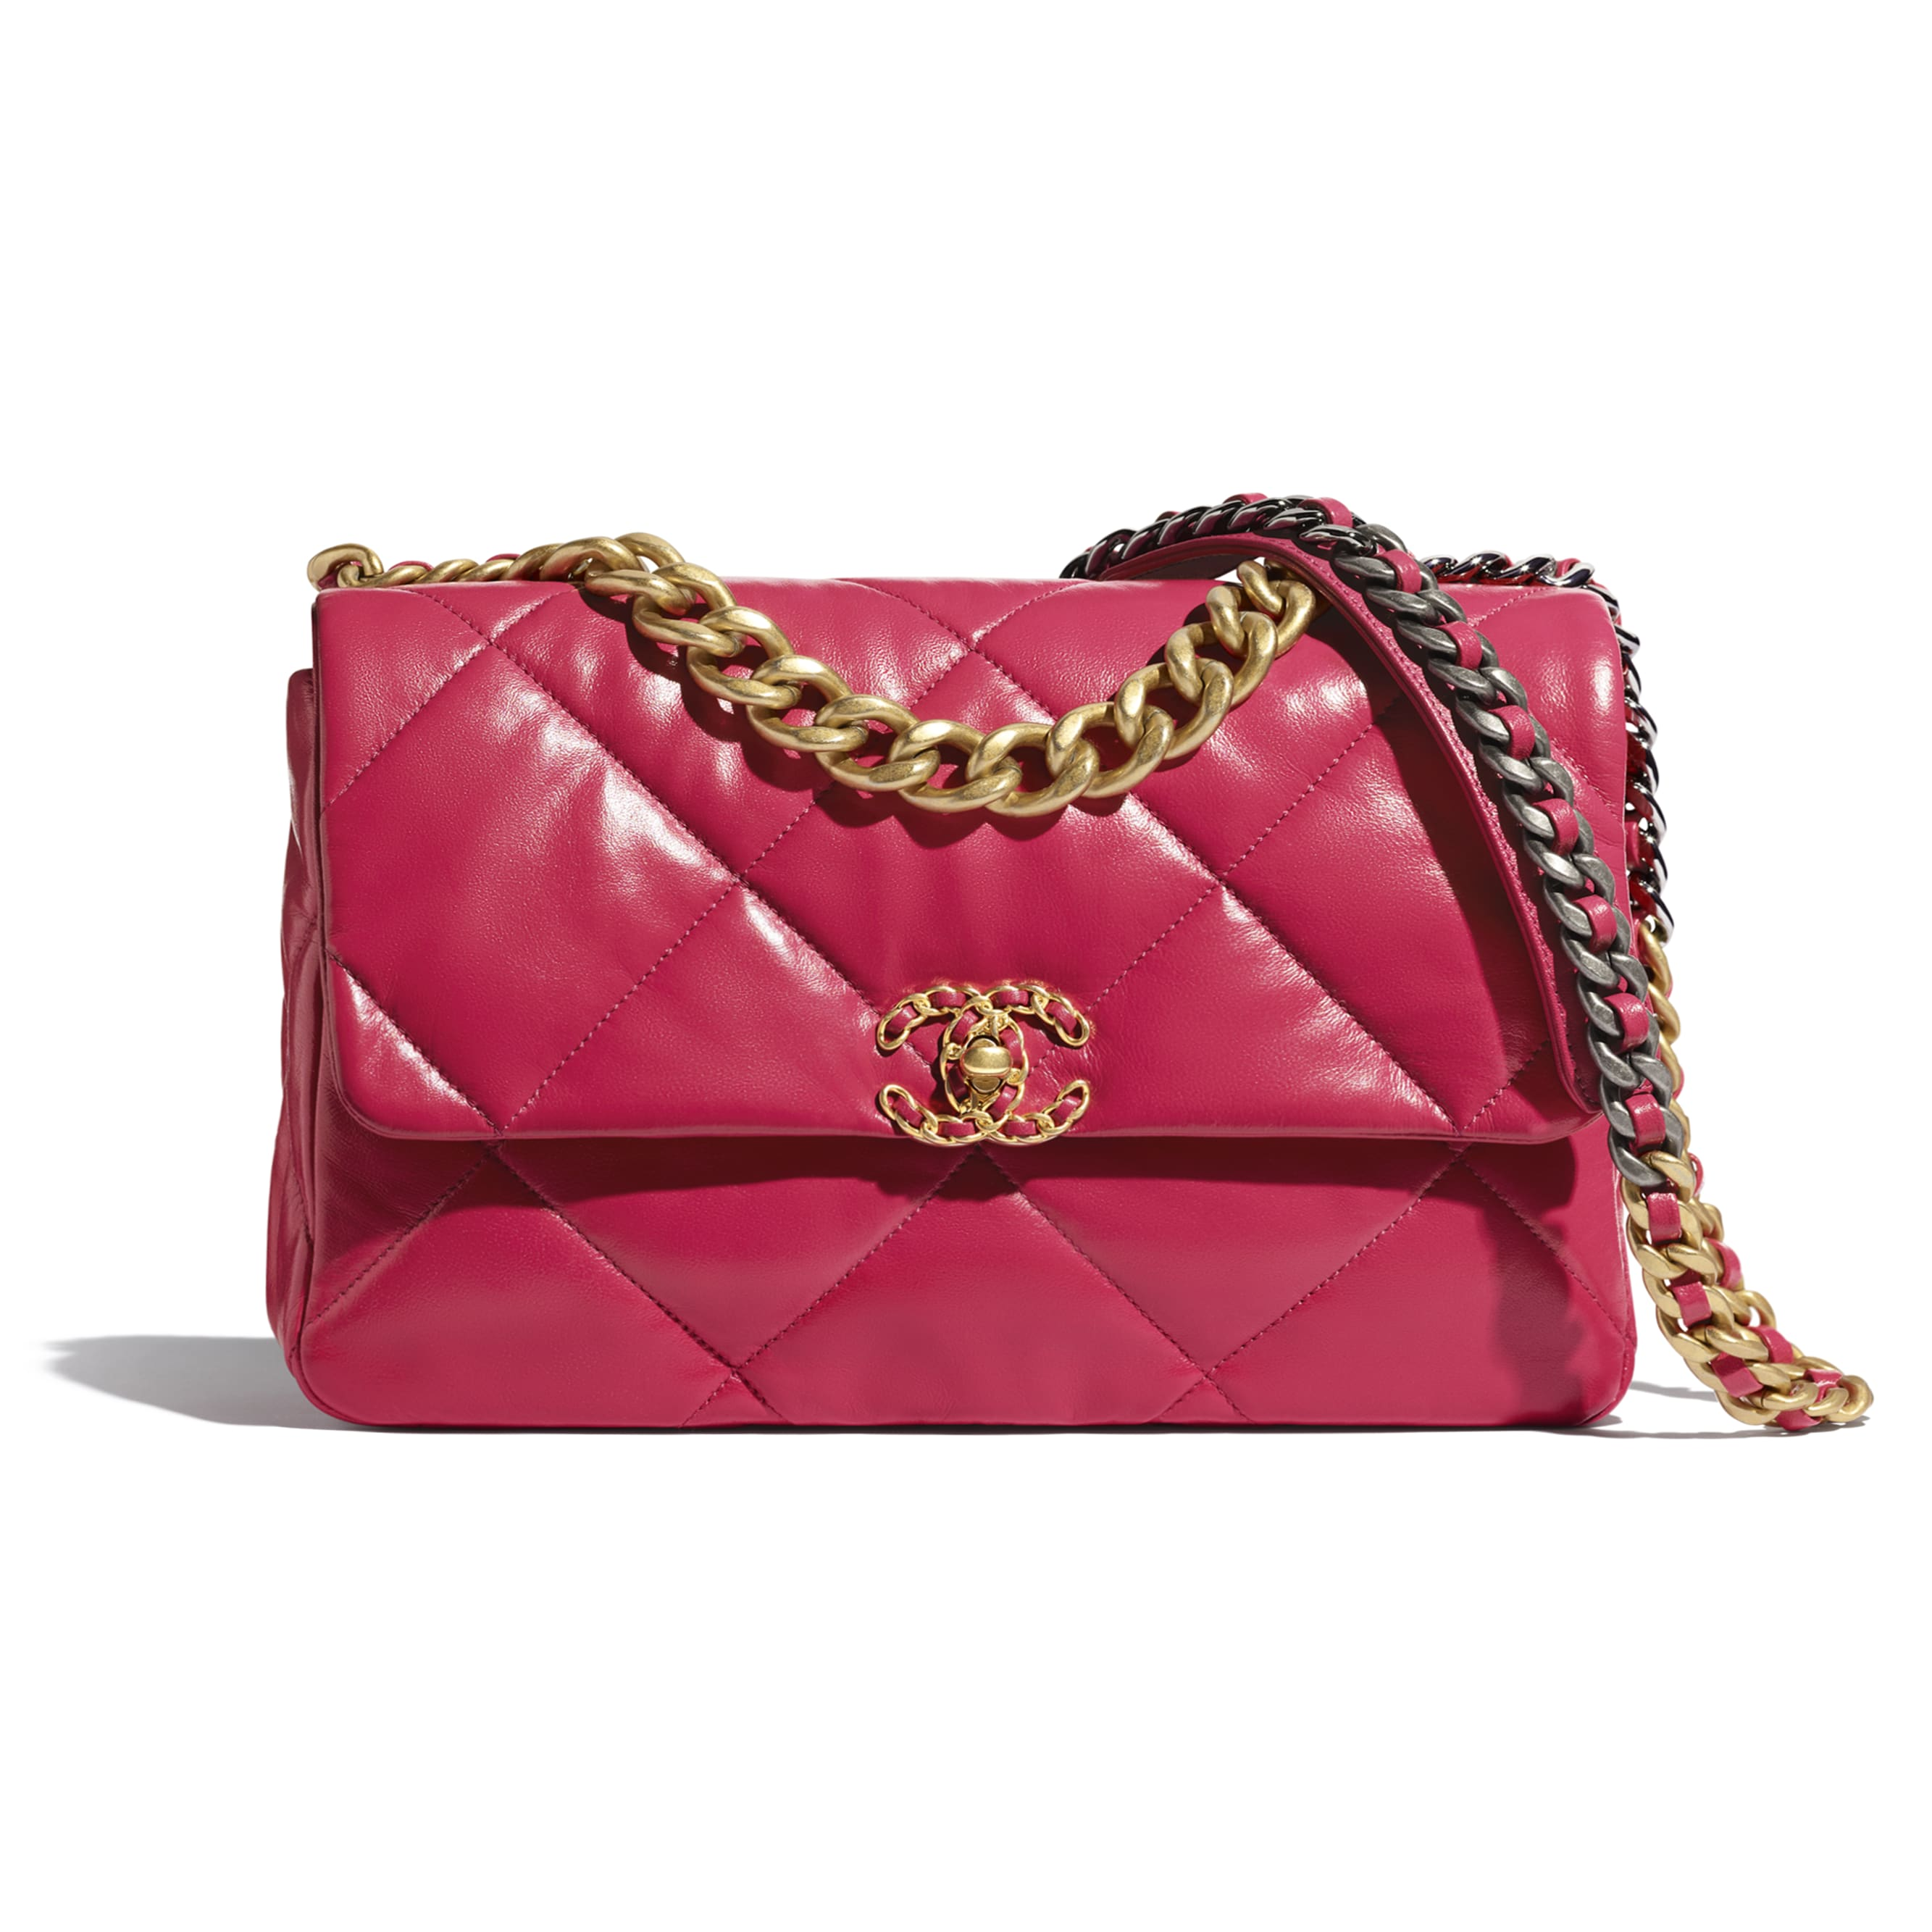 CHANEL 19 Large Flap Bag - Dark Pink - Lambskin, Gold-Tone, Silver-Tone & Ruthenium-Finish Metal - CHANEL - Default view - see standard sized version